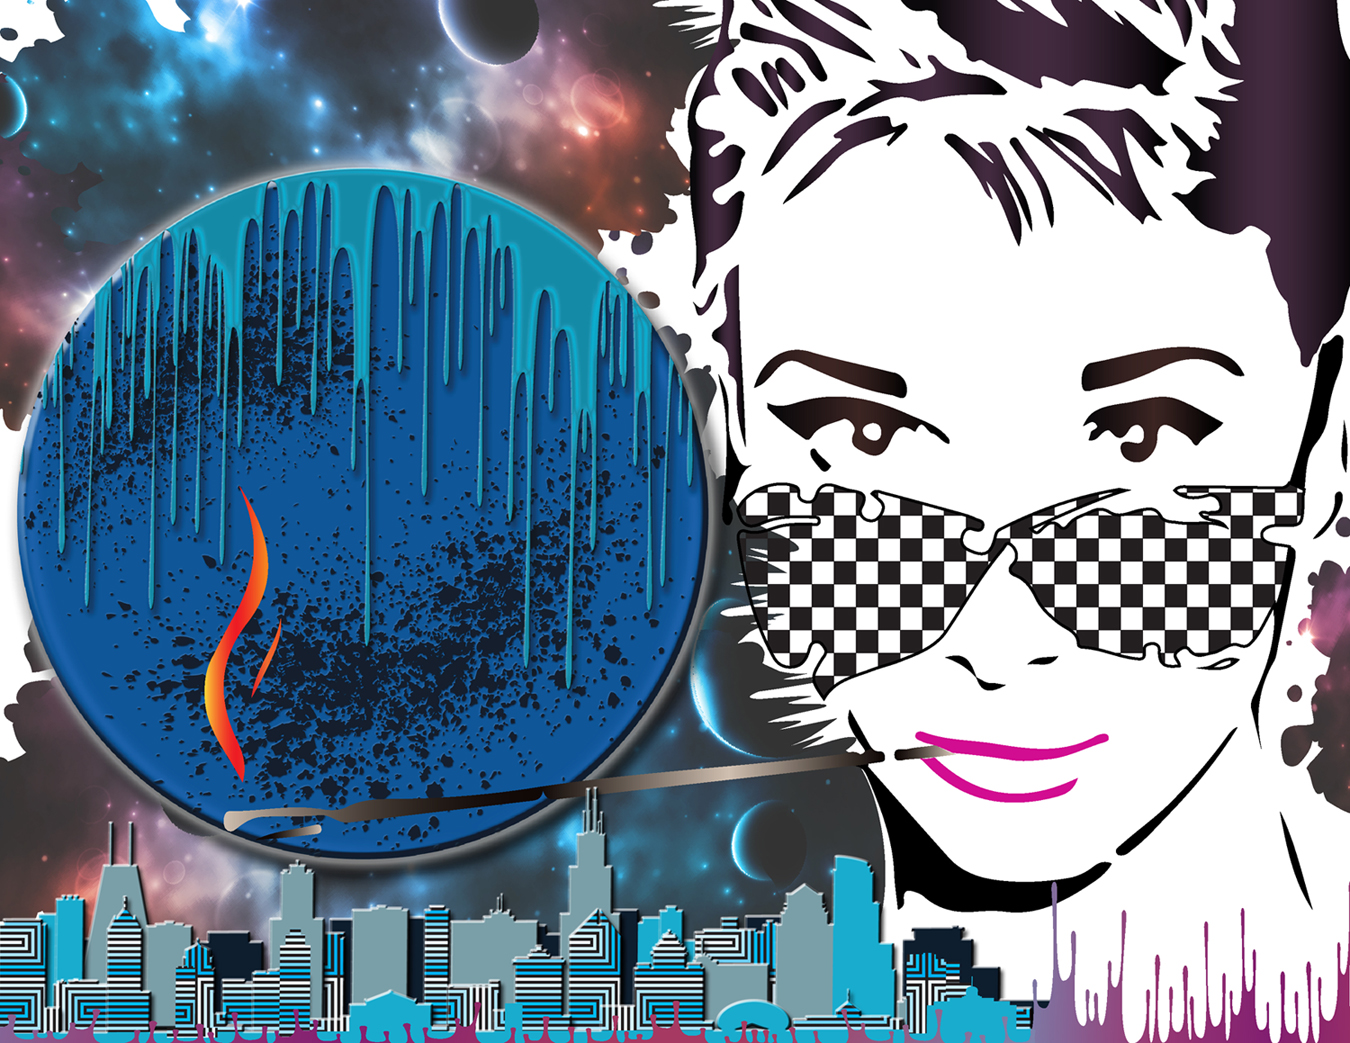 AUDREY HEPBURN GALAXY CITY